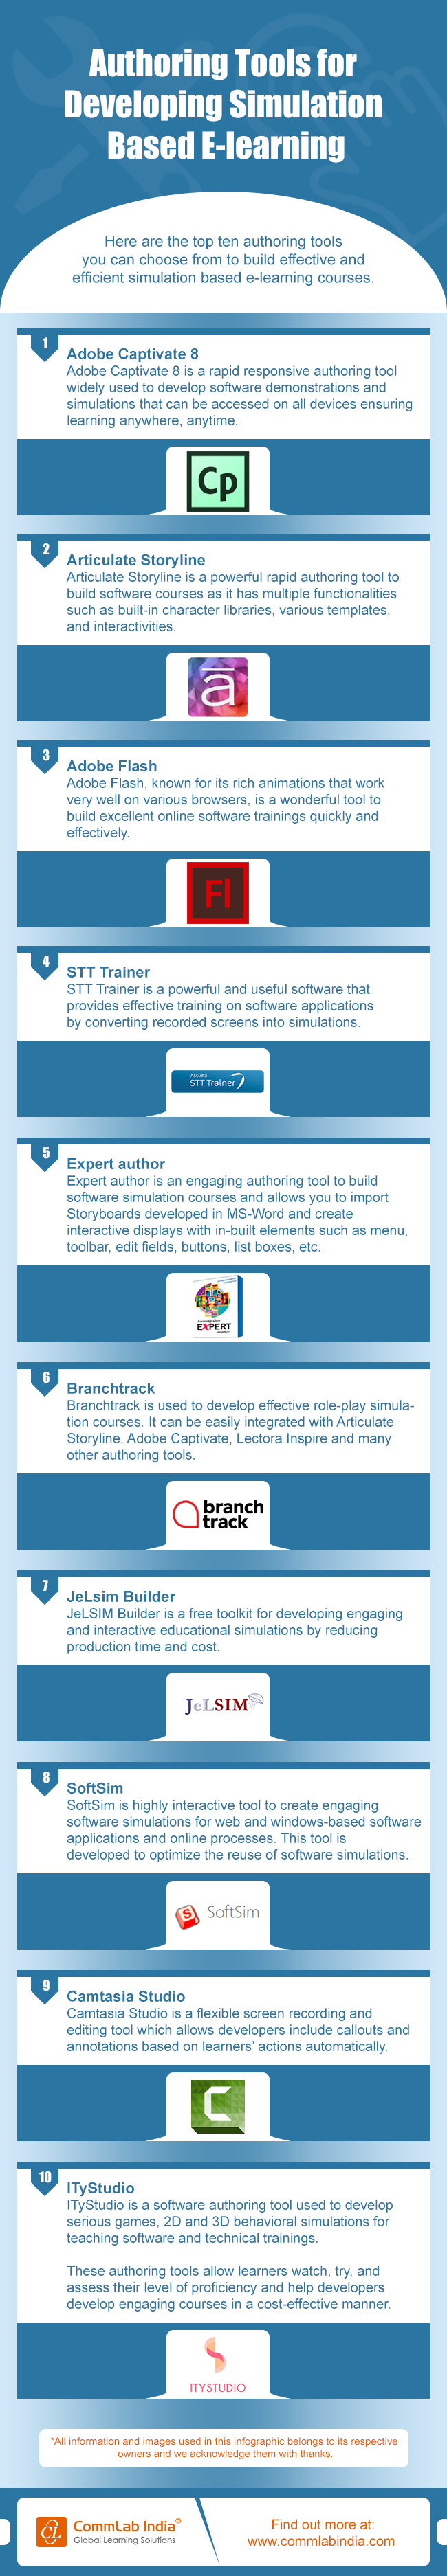 Authoring Tools for Developing Simulation Based E-learning [Infographic]